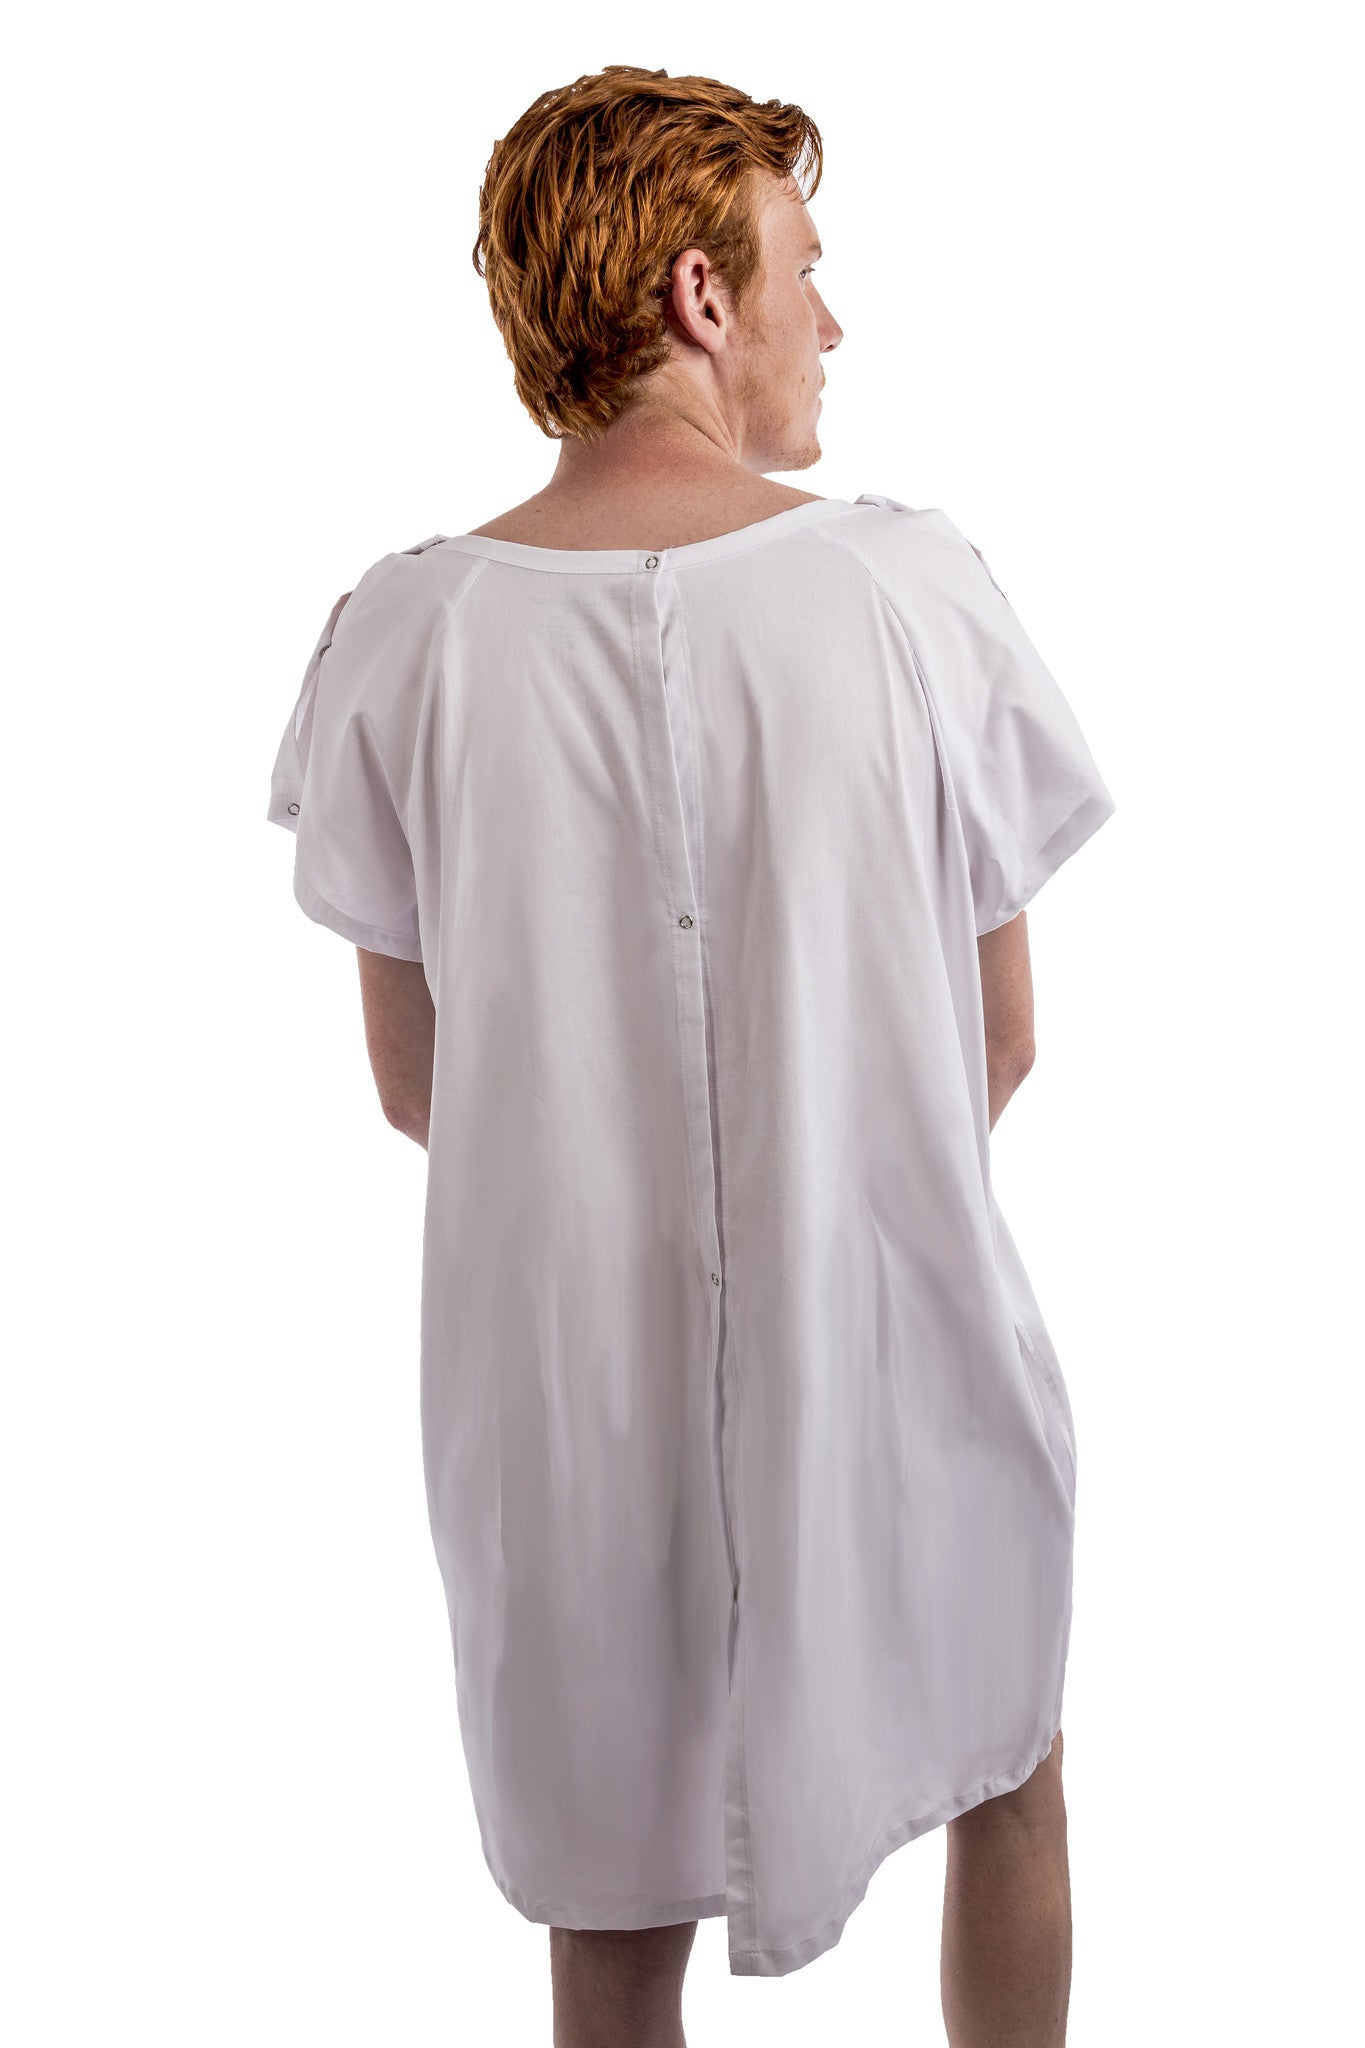 Disorganization Unisex Hospital Gown Surgery Recovery Maternity Giftgowns